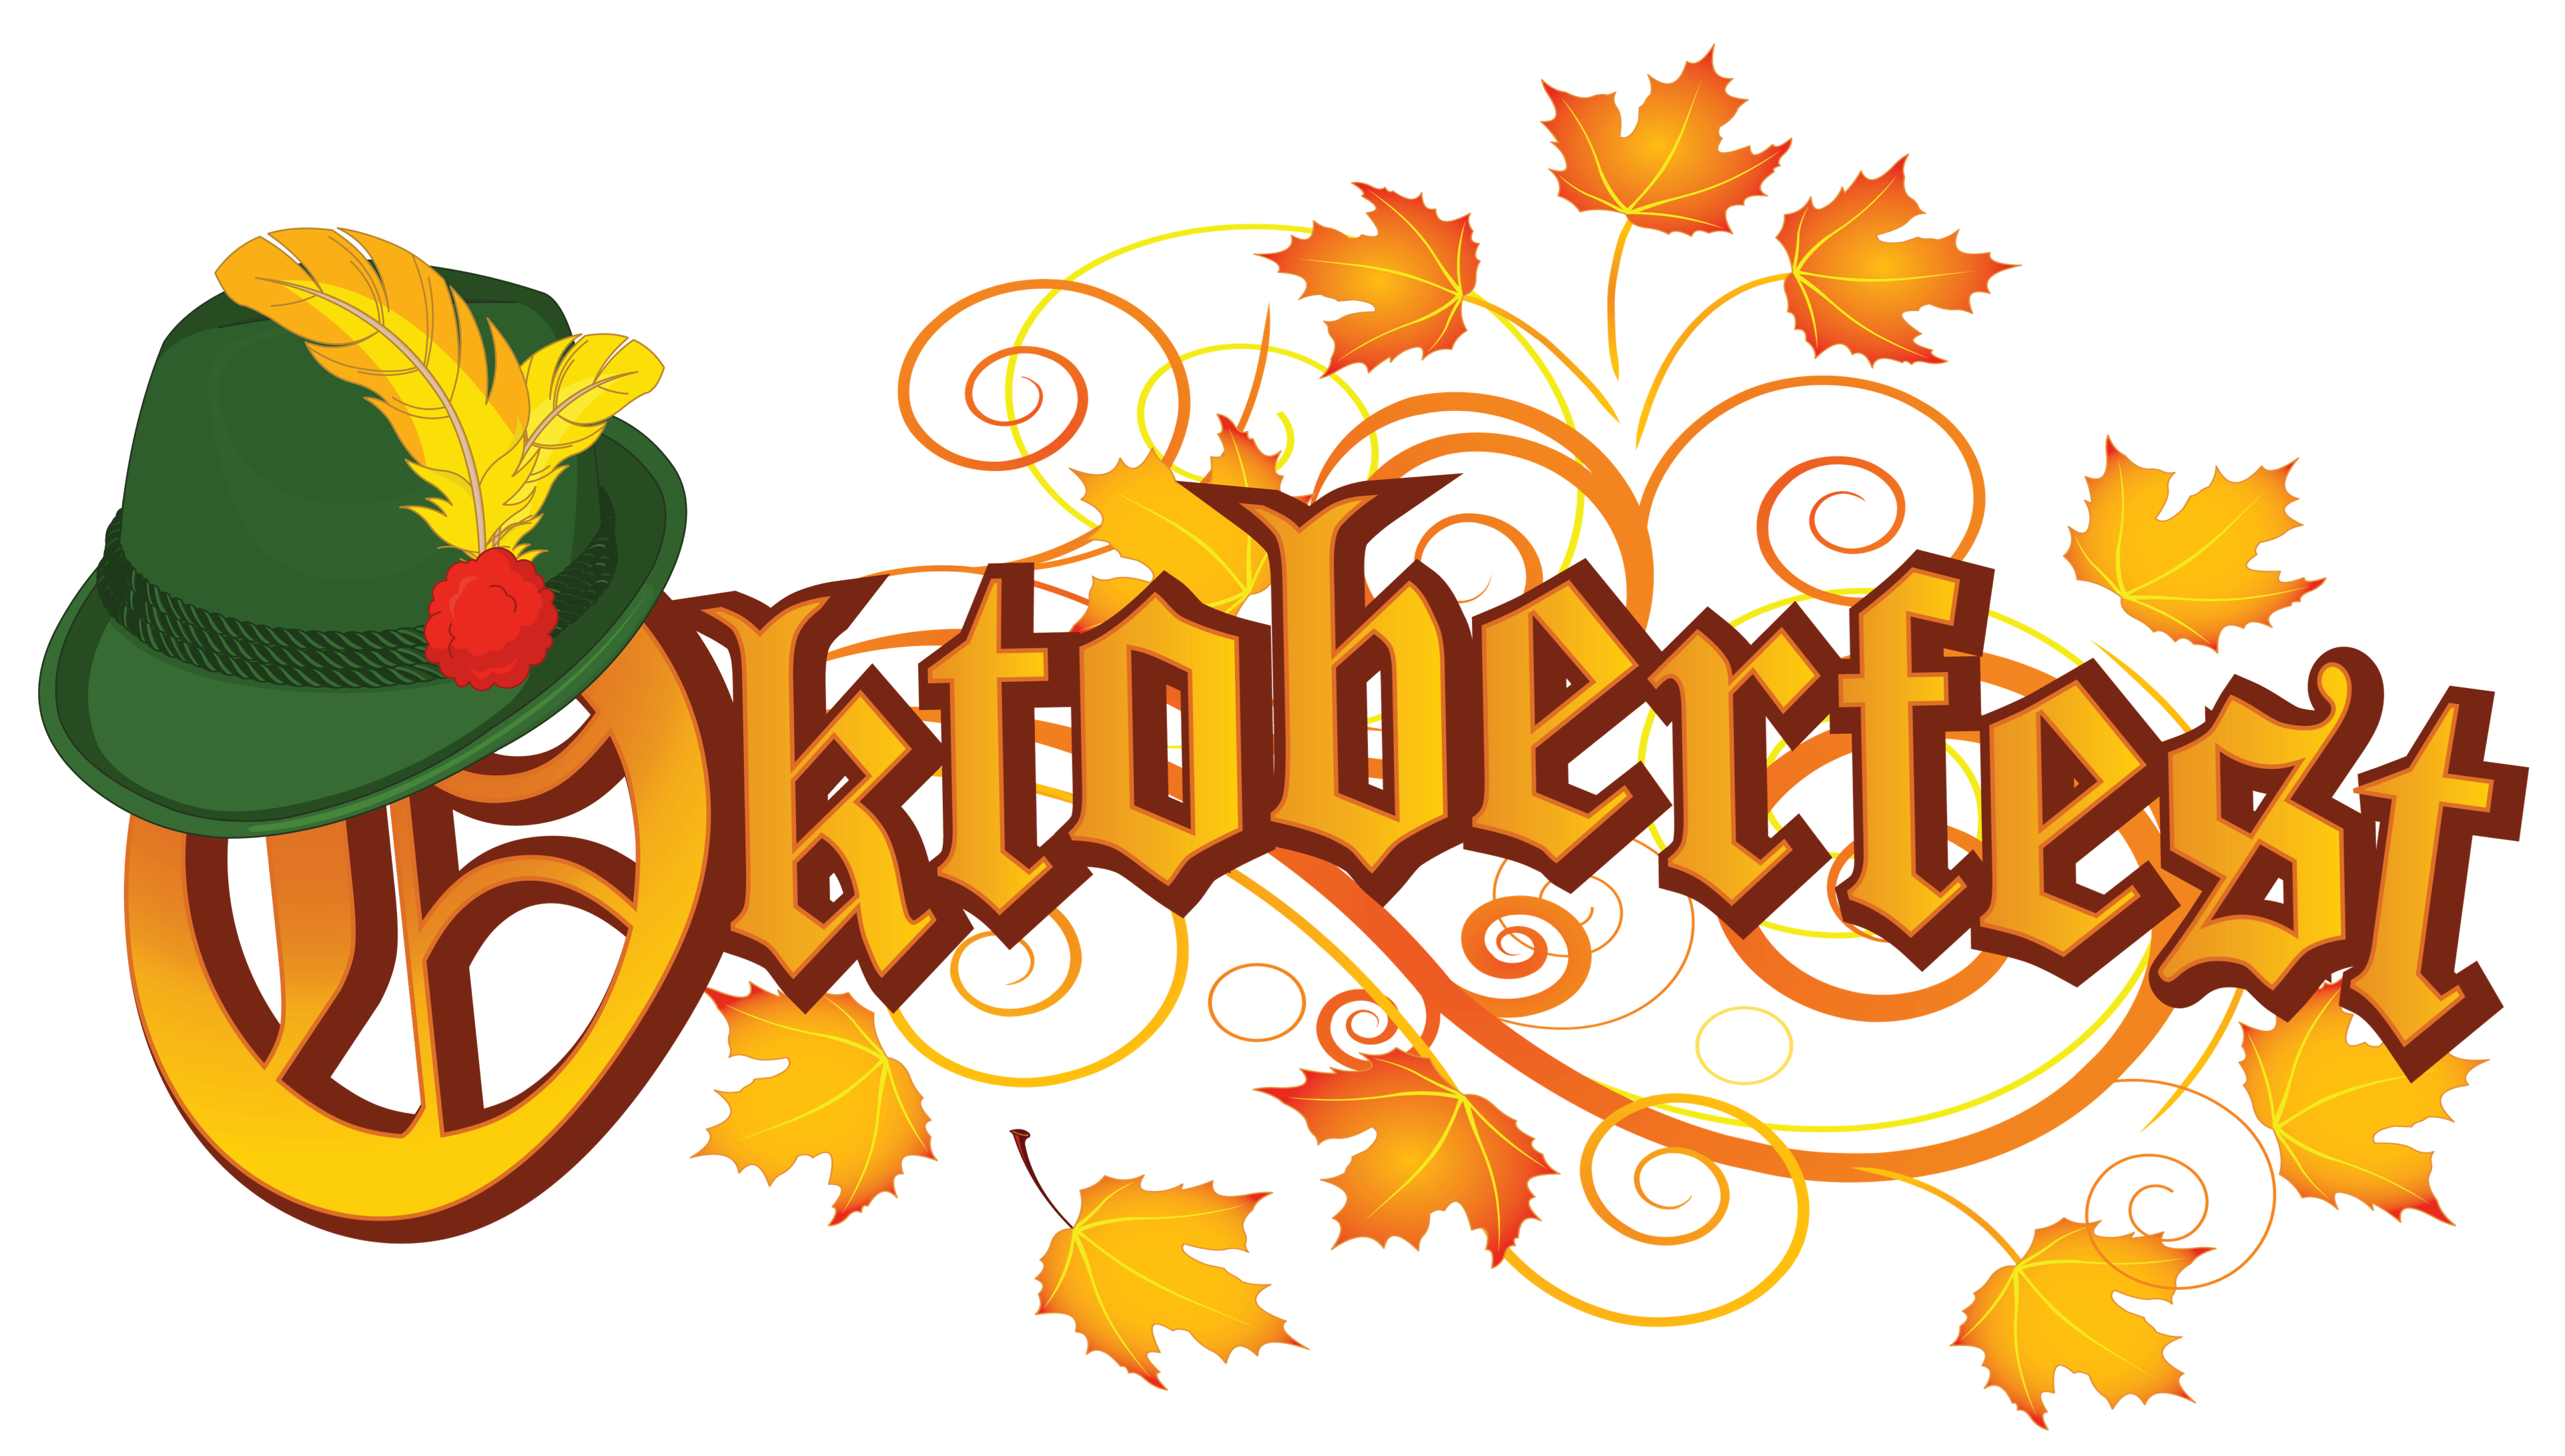 Check out the sticker. Oktoberfest vector artwork freeuse download